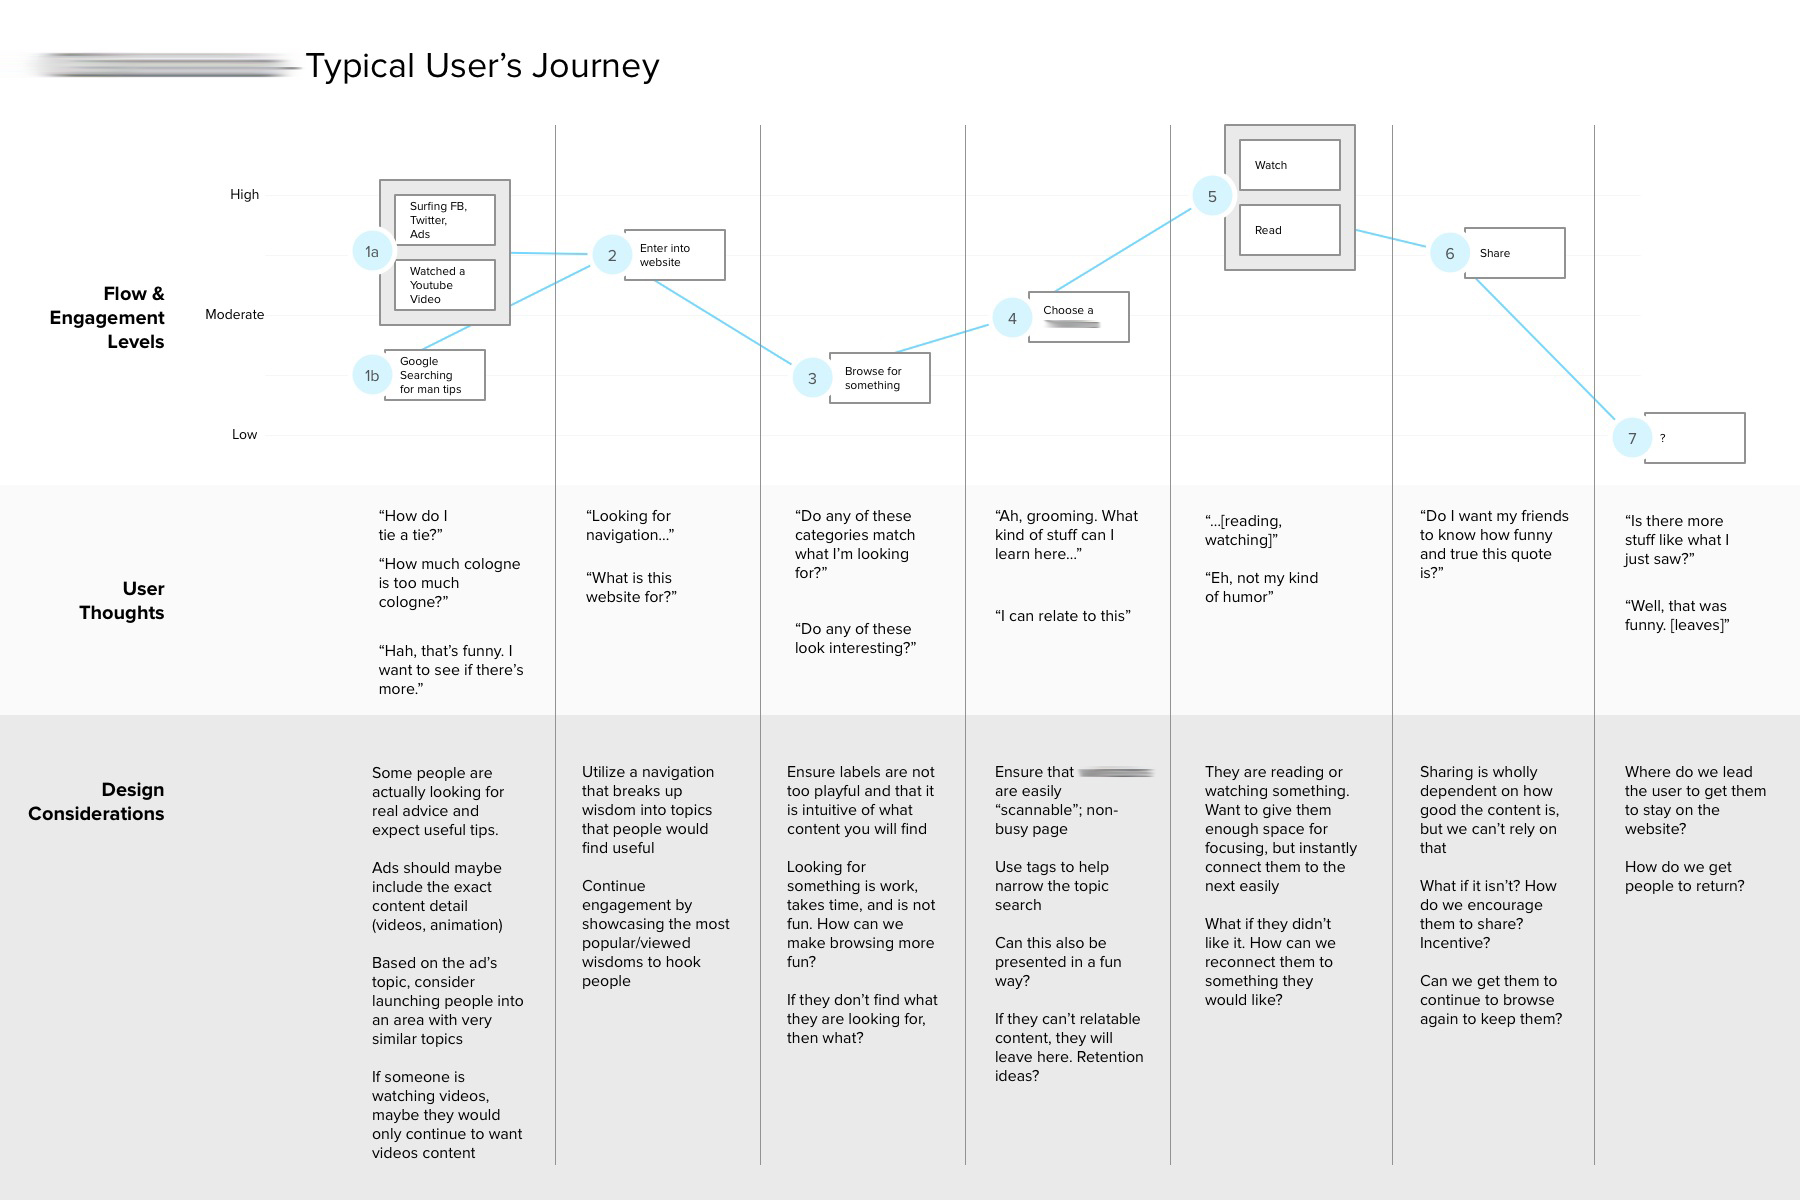 A modified user journey that highlights engagement and thoughts at different touchpoints